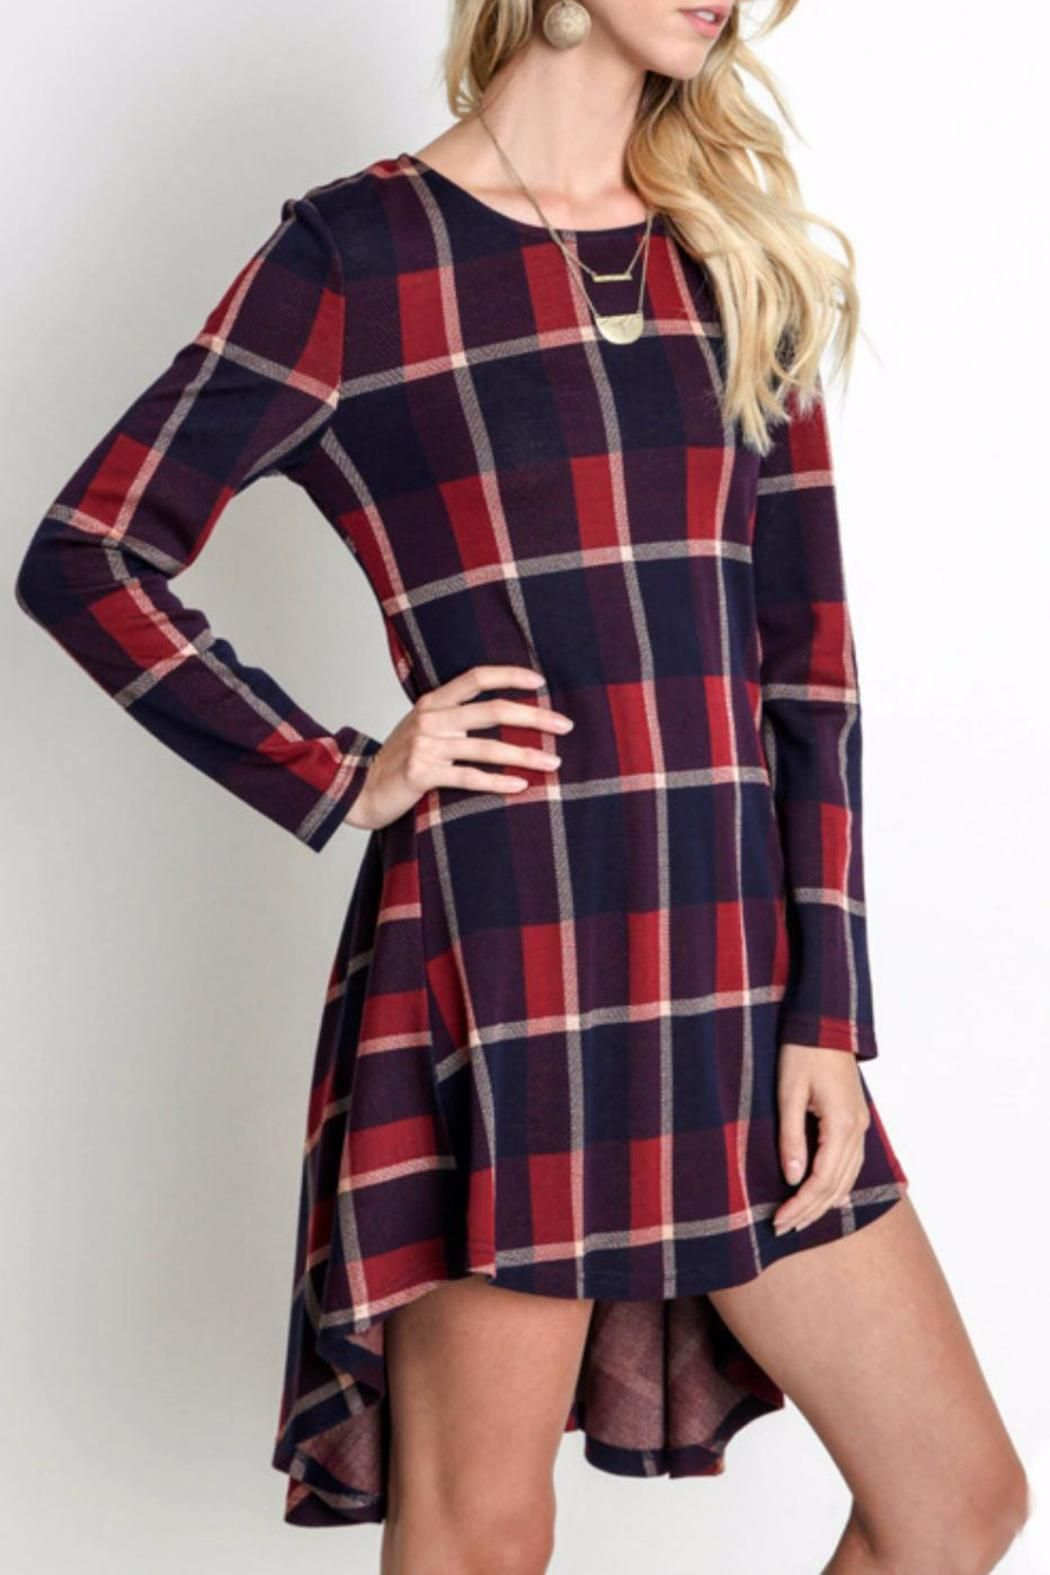 """Burgundy and navy plaid long sleeved, high-low tunic. This dress has a round neck line and has long sleeves. This dress could be worn casually with leather sandals, or with jeans and boots. It could also be dressed up with heels and sparkly jewelry. The fabric feels soft, and is sturdy enough to hold a nice shape. Measures From the top of the shoulder to the hemline the dress measures 33"""" in the front. In the back it drops as long as 36"""". The bust measures 19"""" across the front. Burgundy…"""